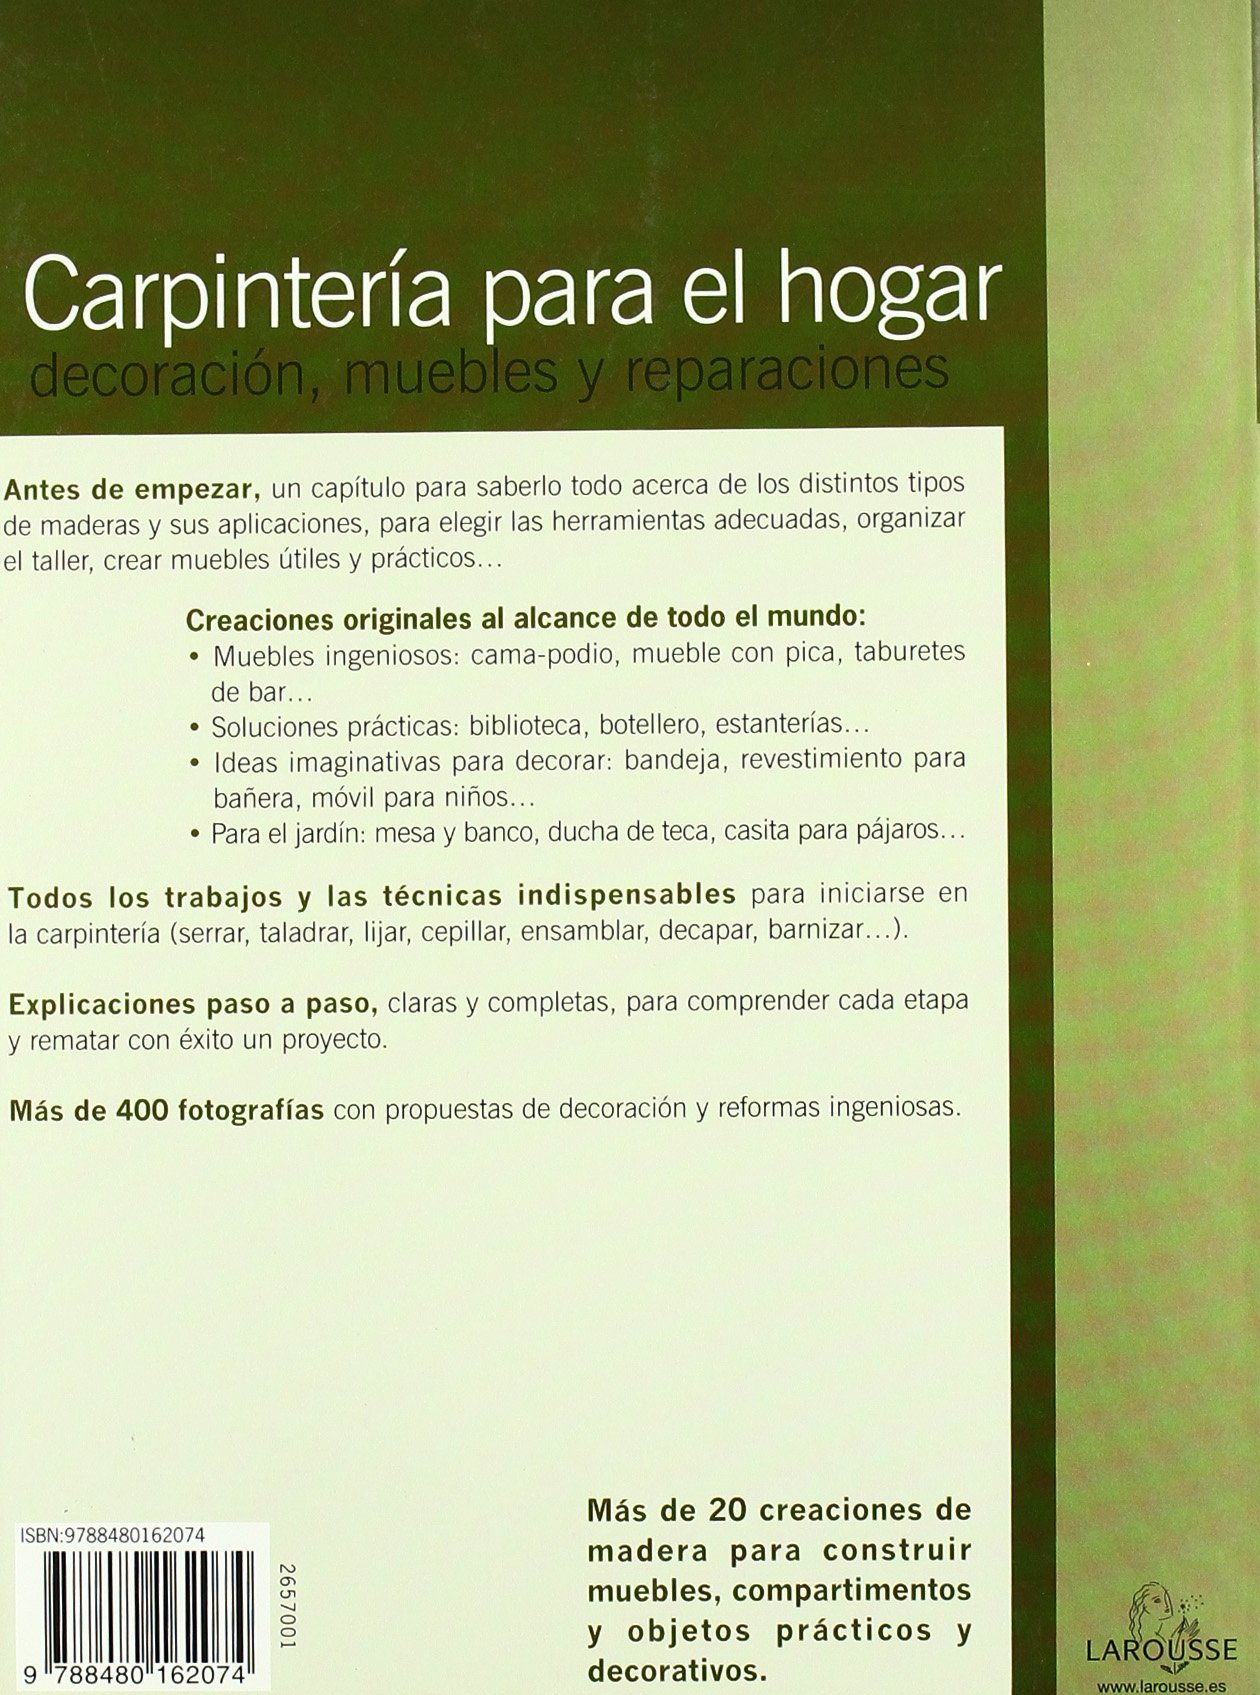 Carpinteria para el hogar/ Carpentry for the Home: Decoracion, Muebles Y Reparaciones (Spanish Edition): Larousse Editorial: 9788480162074: Amazon.com: ...